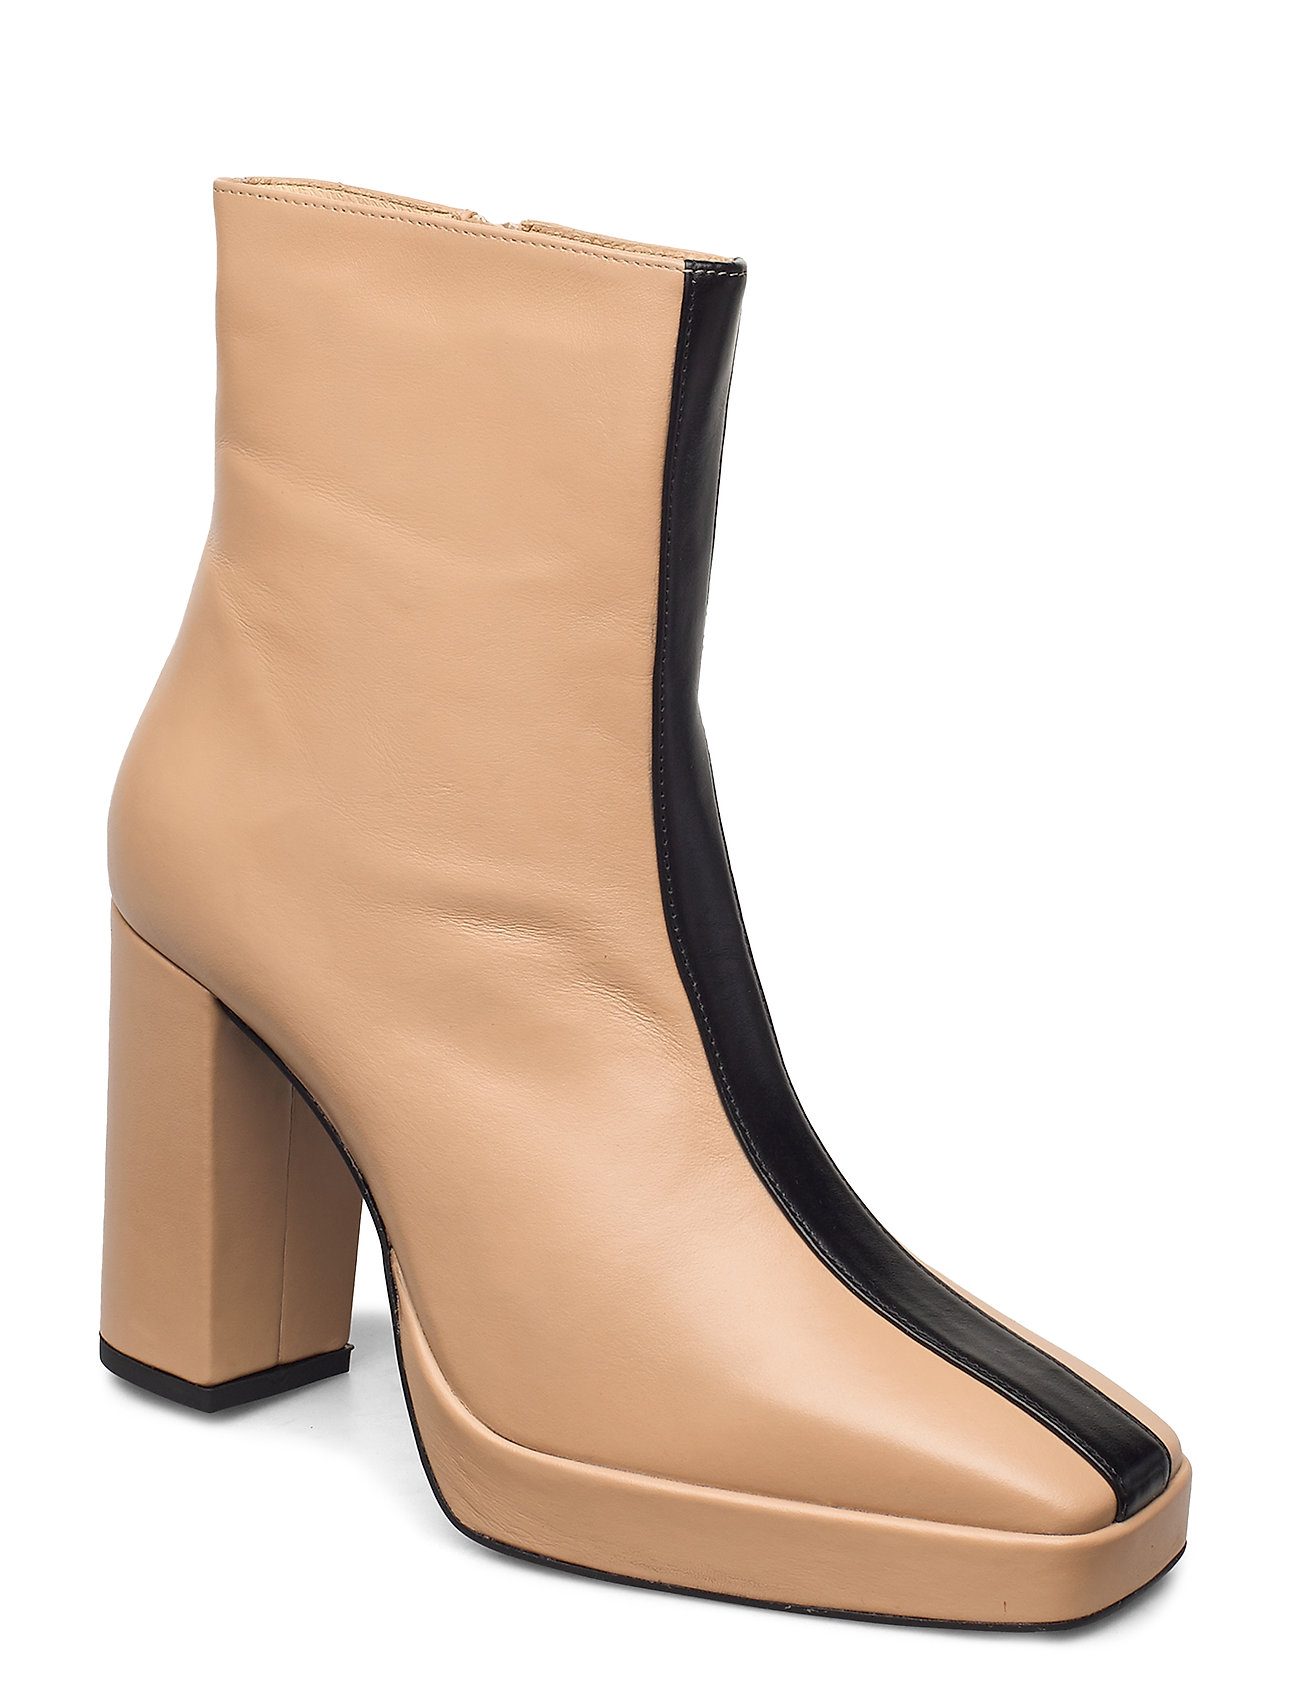 Image of Crossing The Line Ankle Boot Shoes Boots Ankle Boots Ankle Boot - Heel Beige ANNY NORD (3446808793)